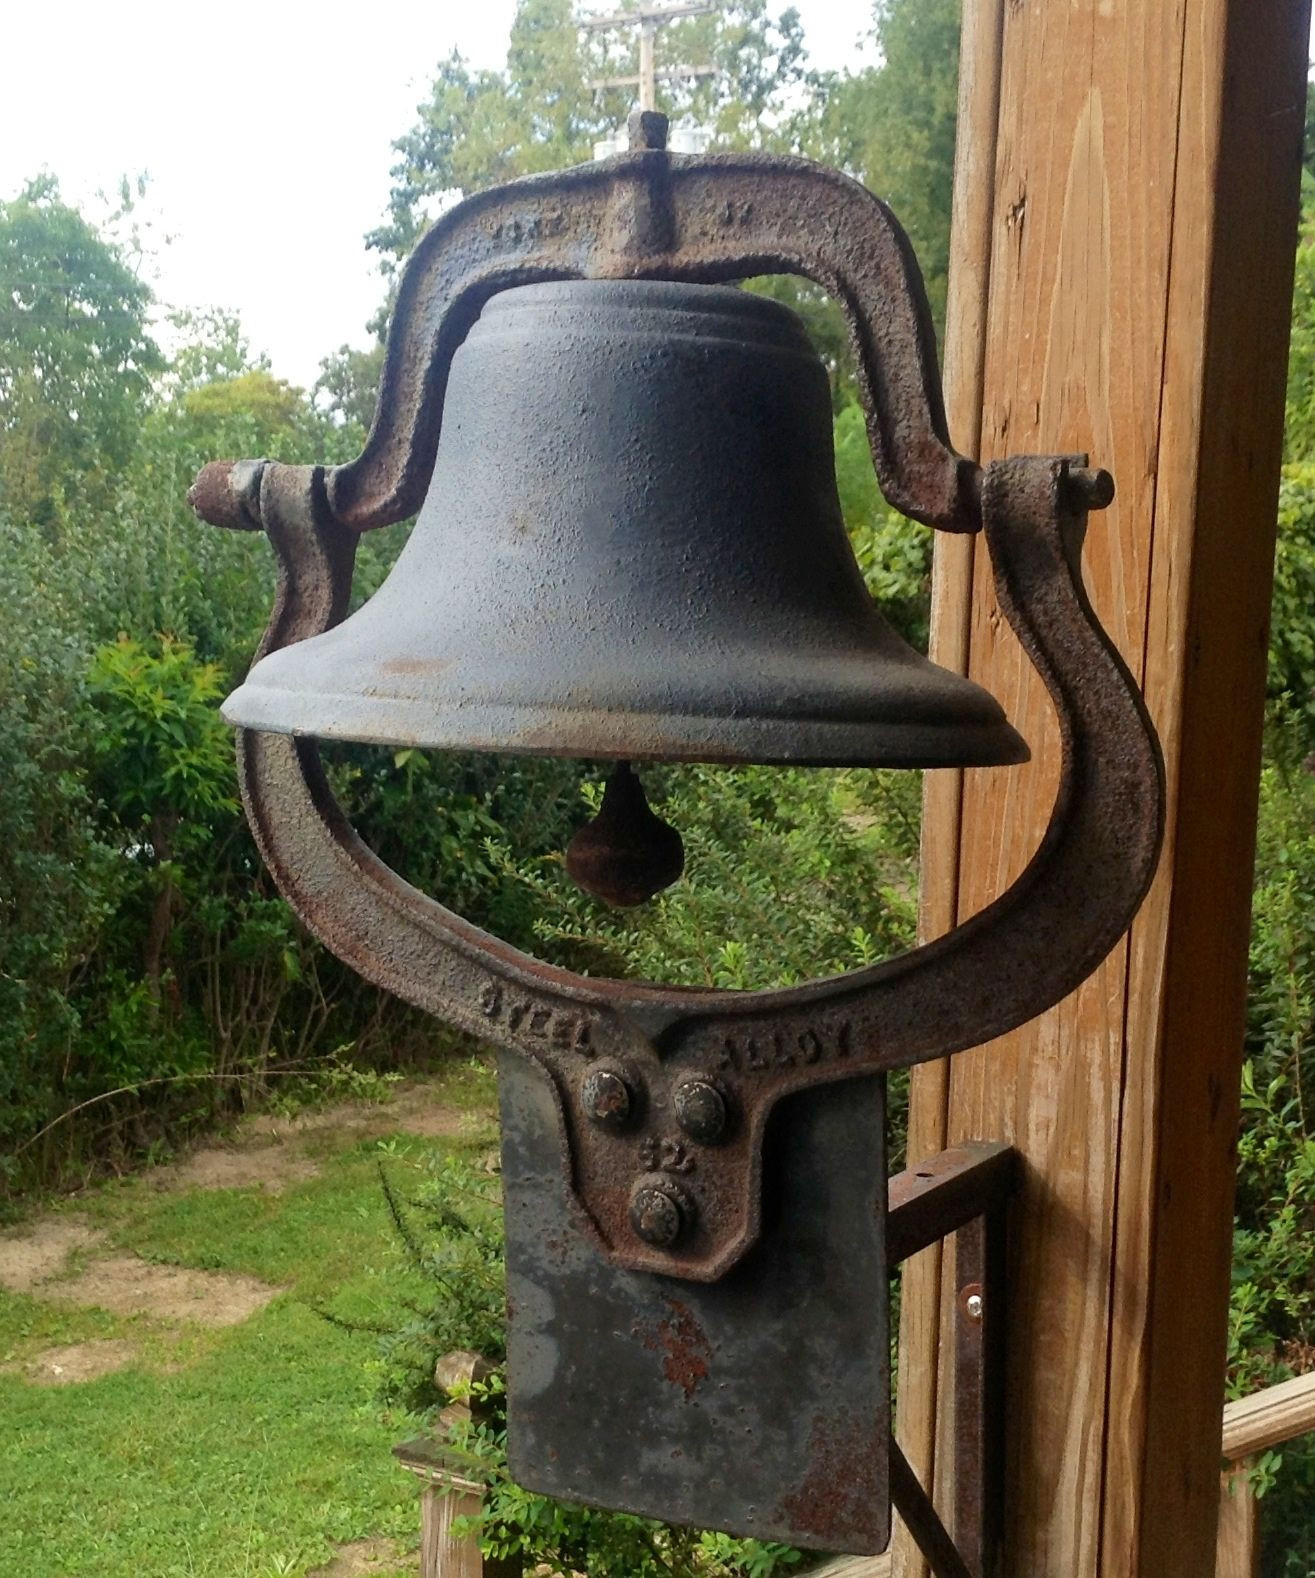 Antique Dinner Bell  This is a VERY RARE 62 antique cast iron school church